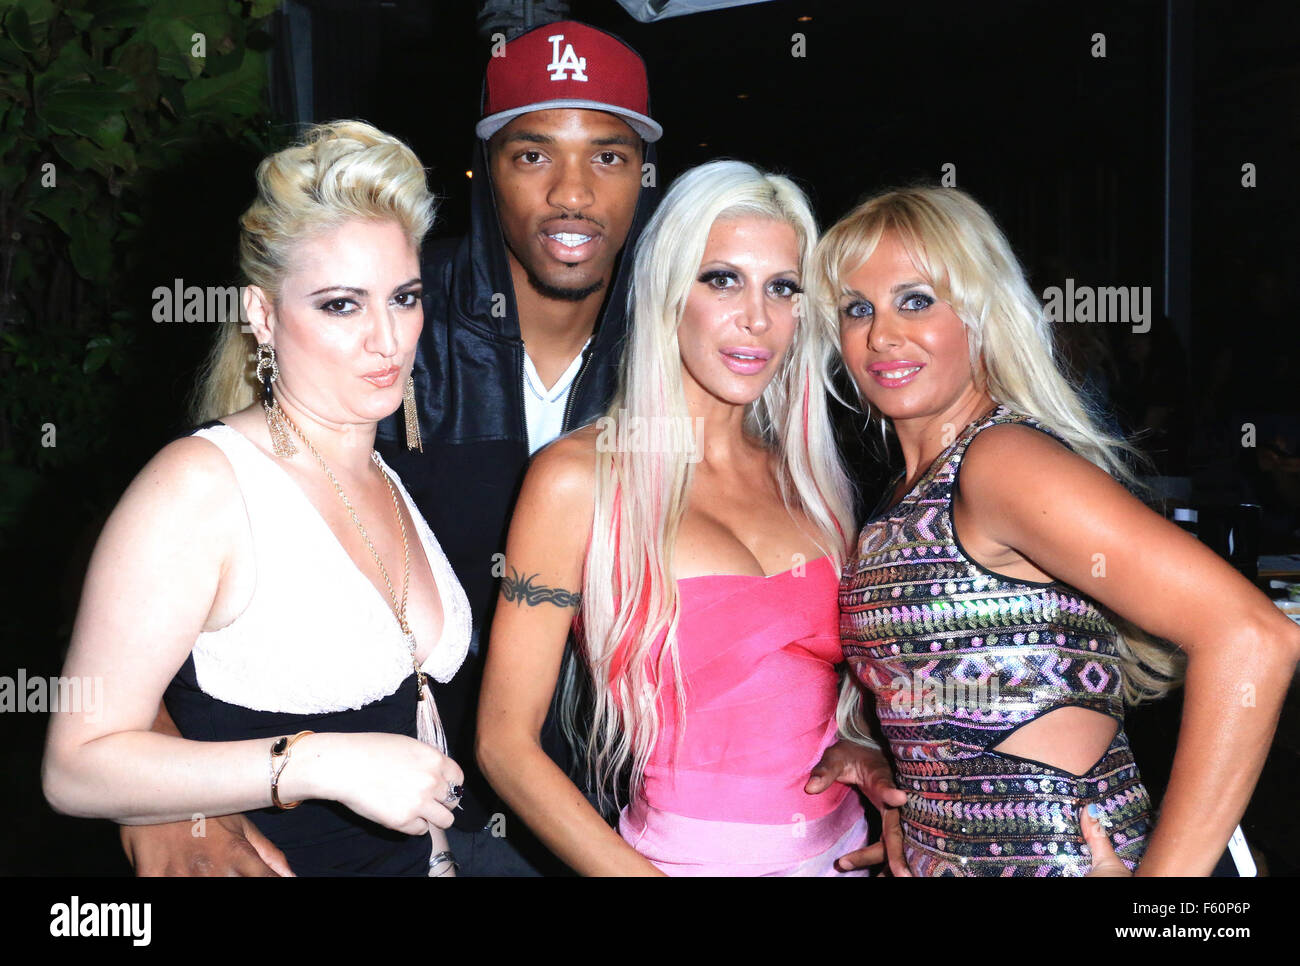 Angelique Morgan angelique morgan, also known as frenchy, hosts a party for